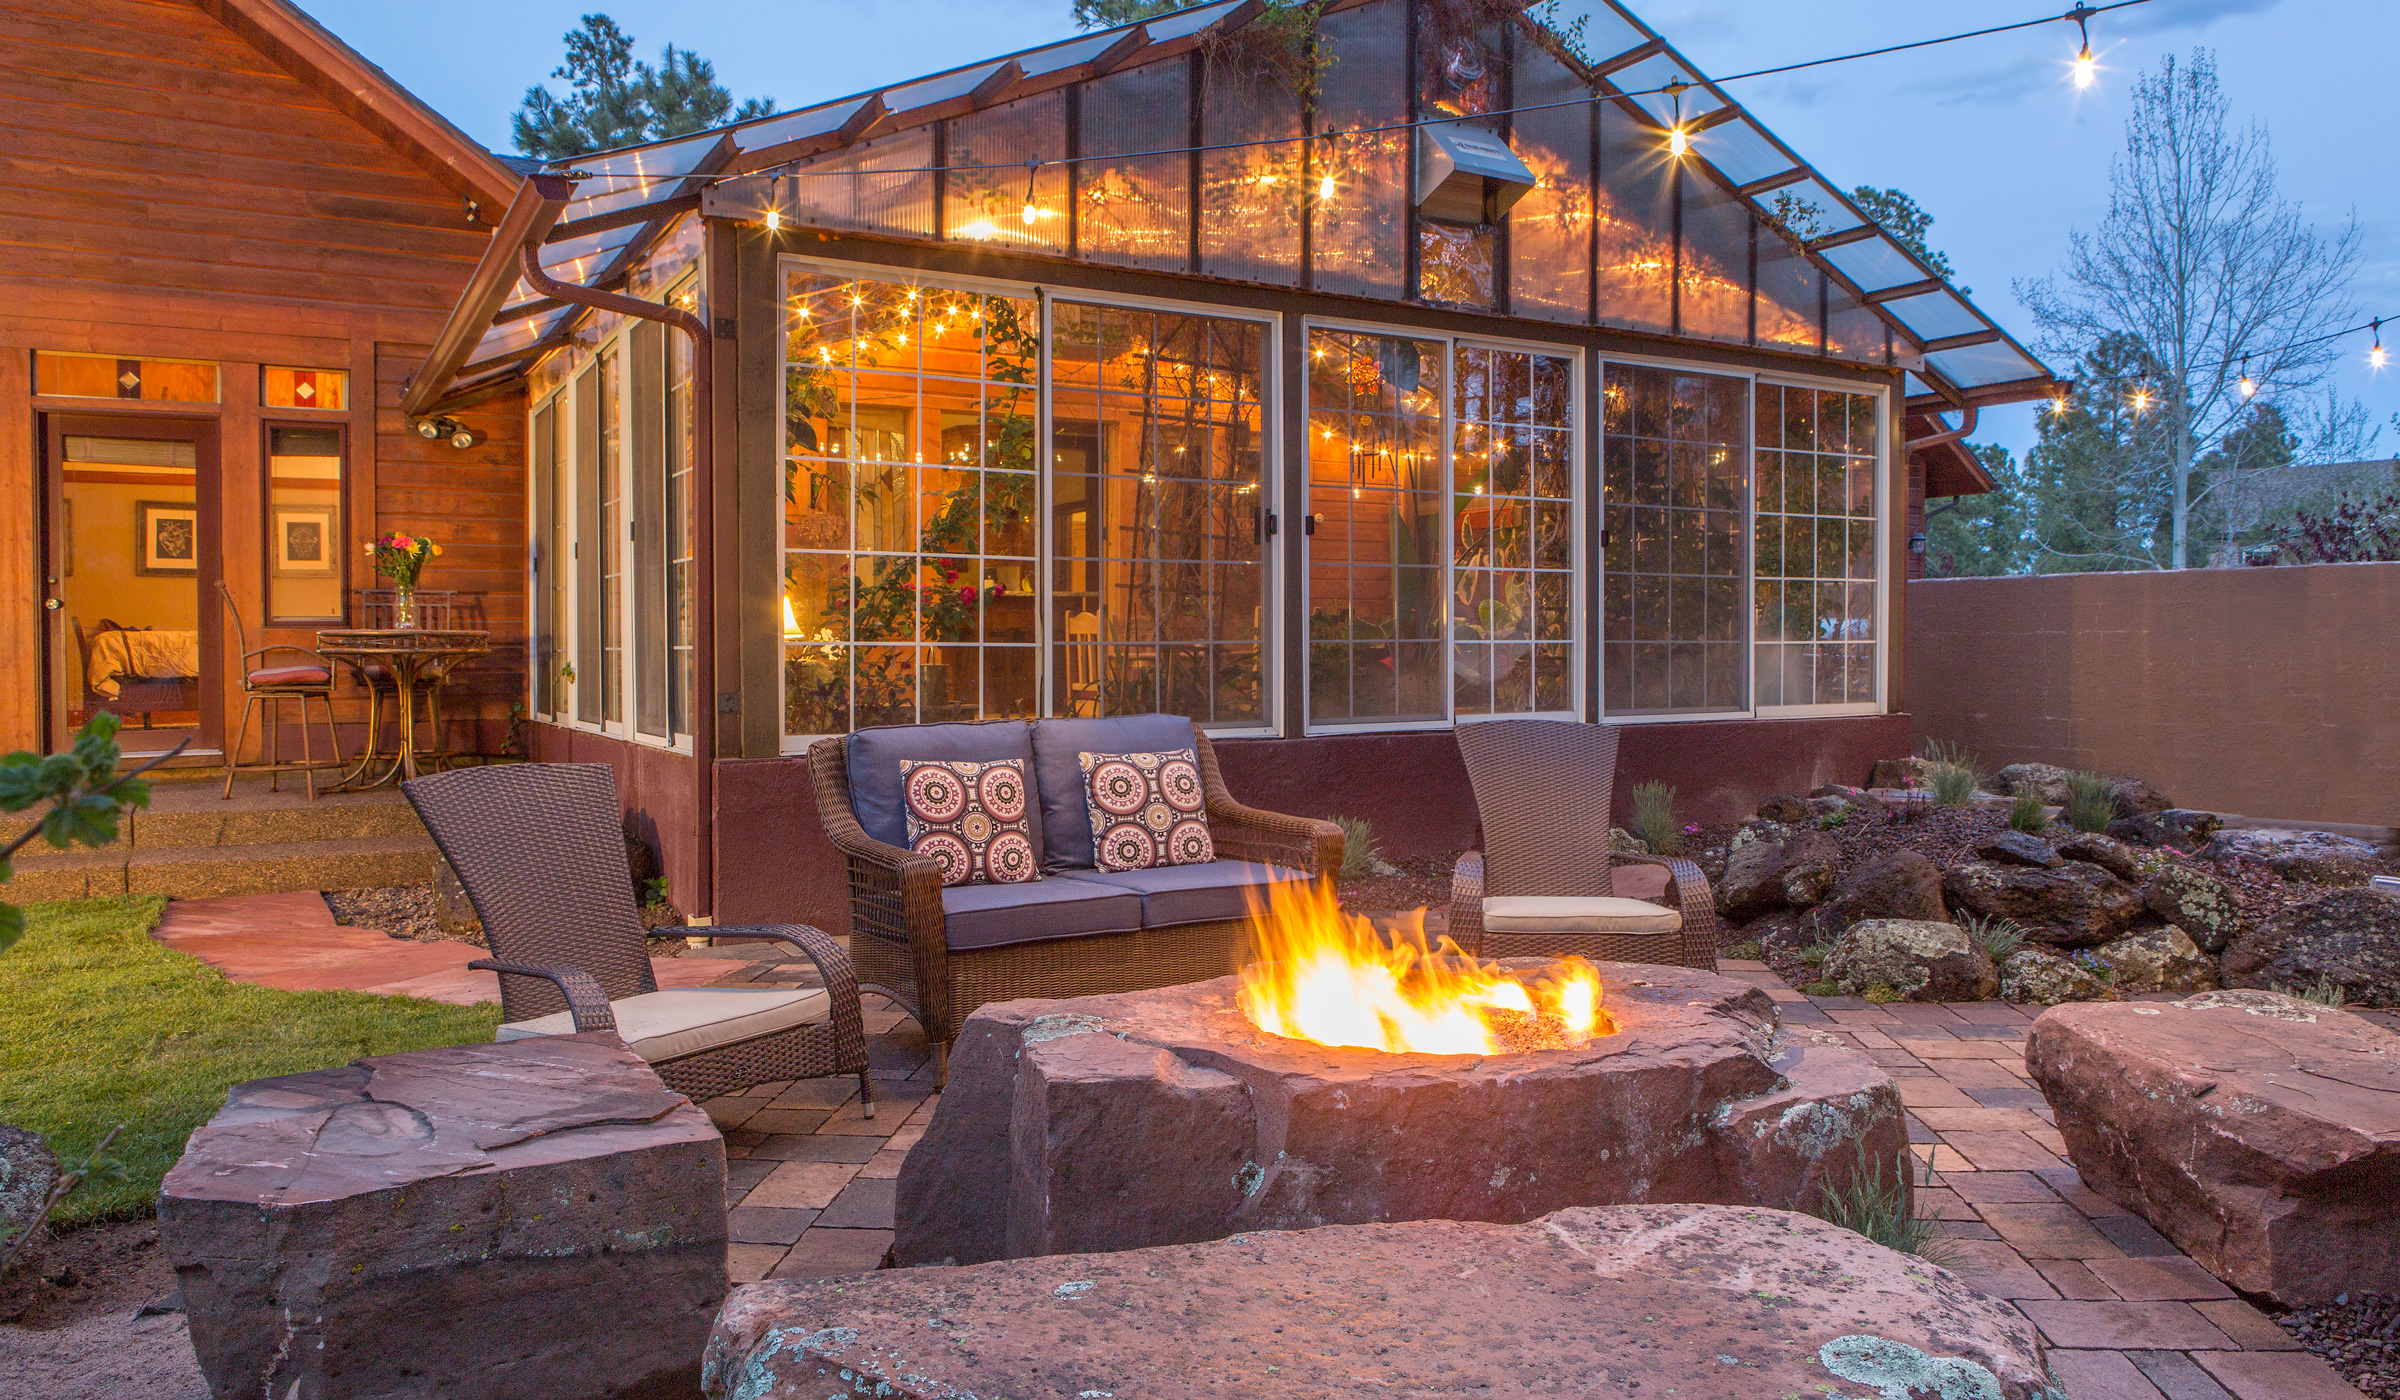 patio landscaping construction and fire-pit backyard